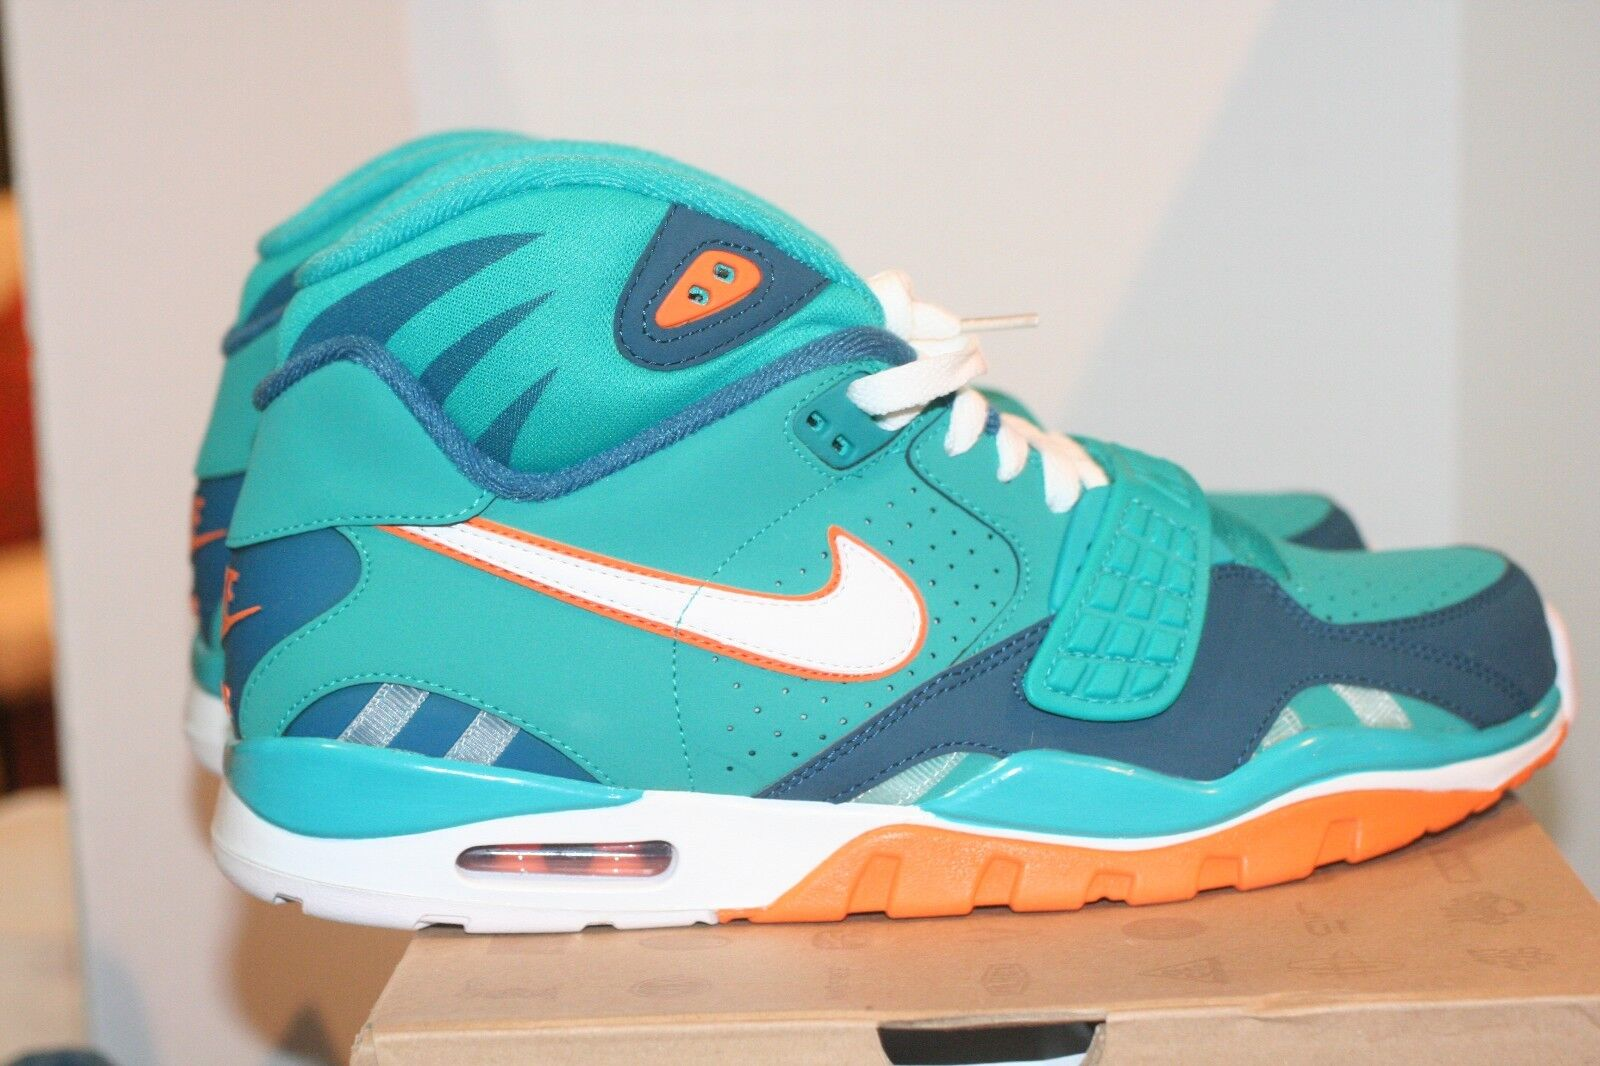 Nike Air Trainer SC II QS Miami Dolphins DS Comfortable best-selling model of the brand